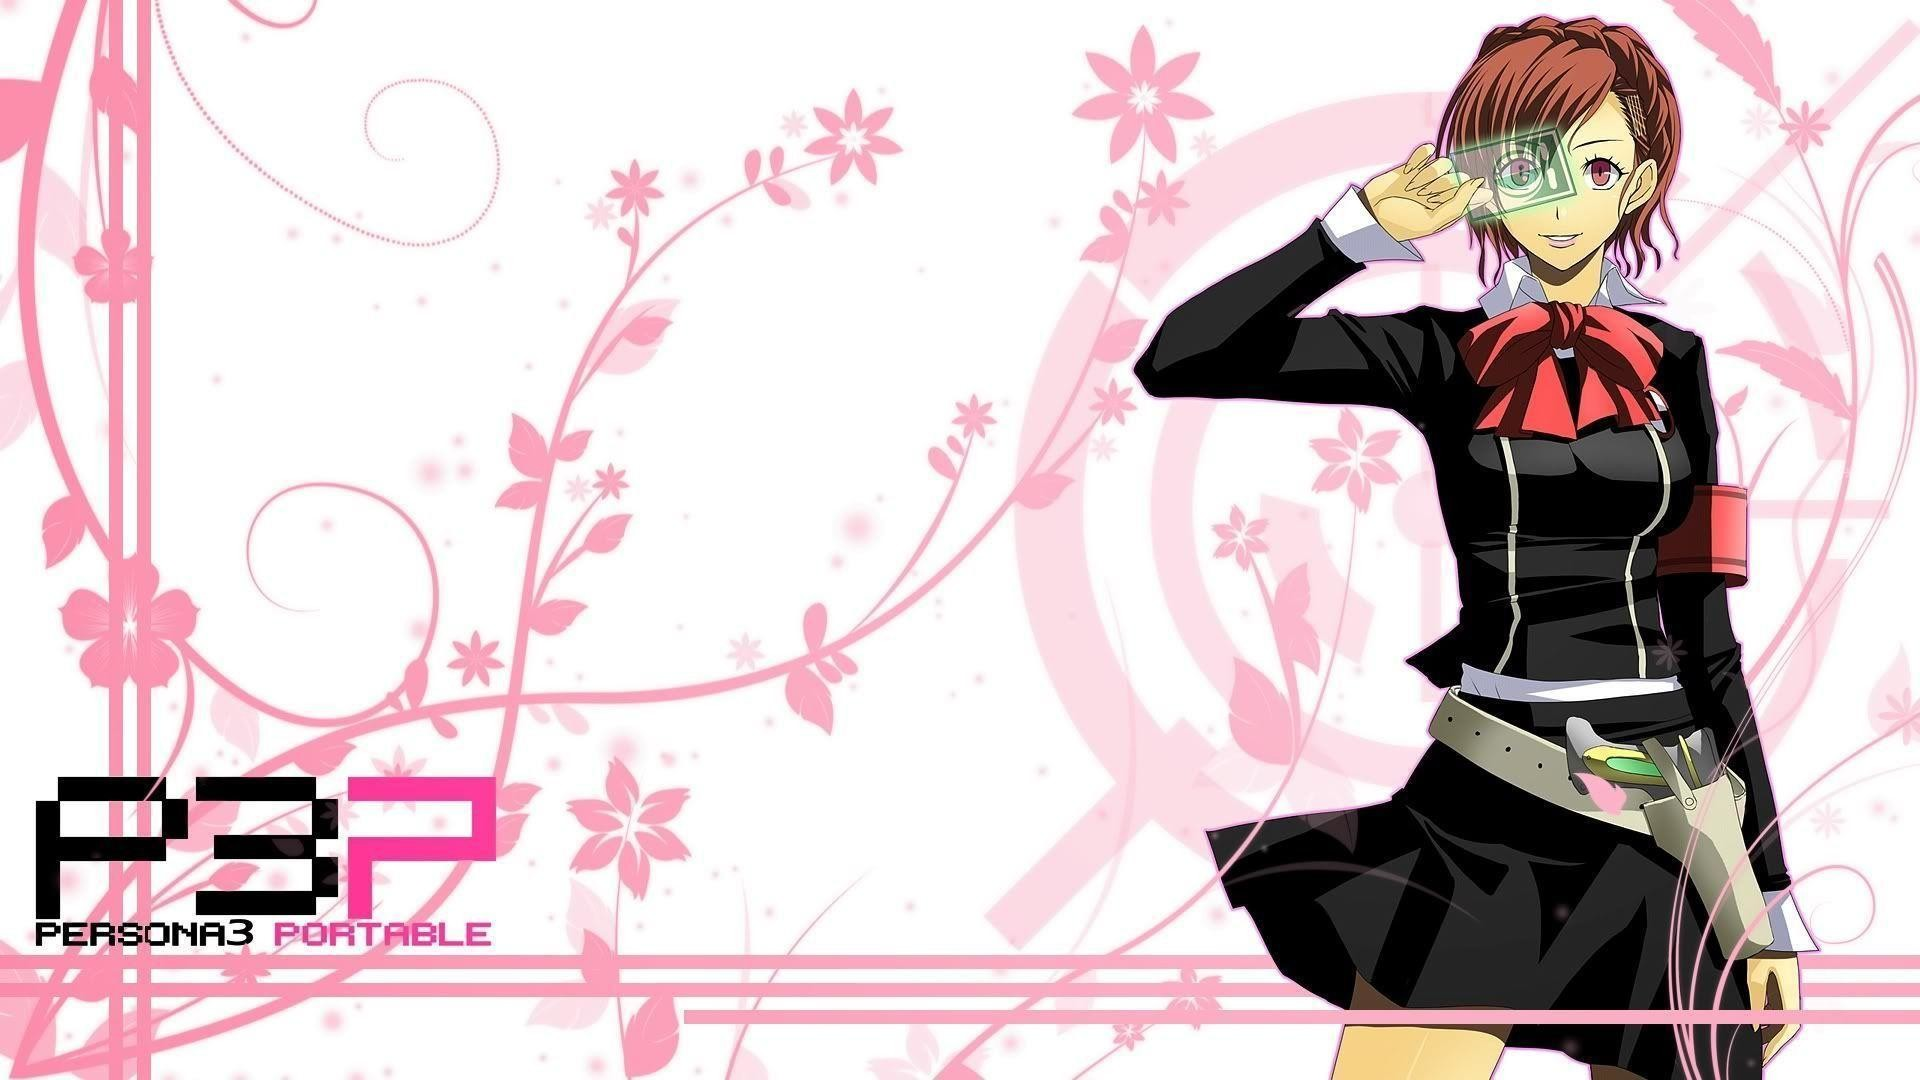 1920x1080 Persona 3 Wallpaper *4 - 1920 x 1080 images warning* | BleachAnime .